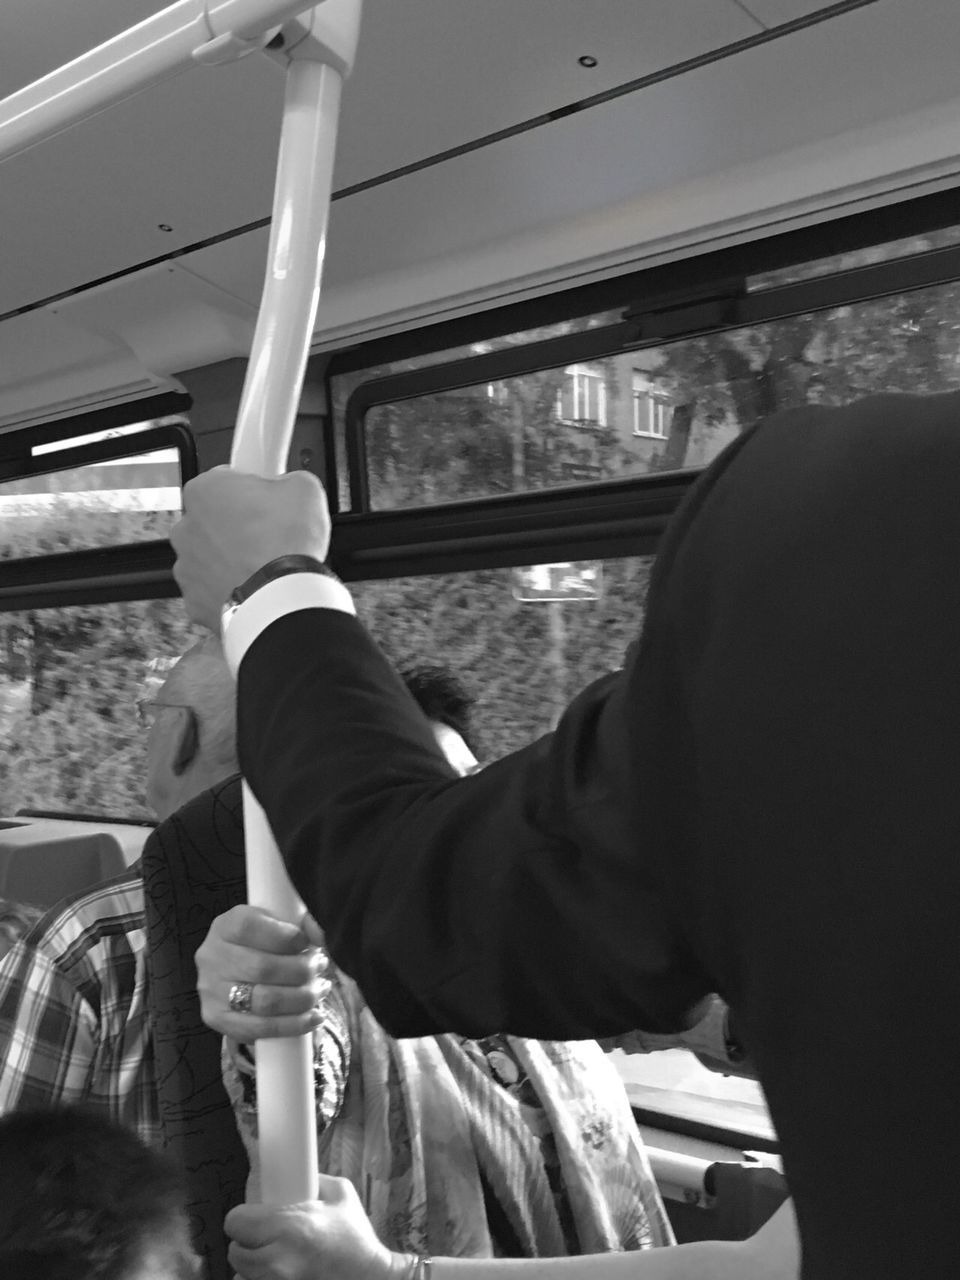 real people, one person, vehicle interior, transportation, mode of transportation, public transportation, rail transportation, men, window, day, train, train - vehicle, land vehicle, lifestyles, travel, hand, holding, sitting, leisure activity